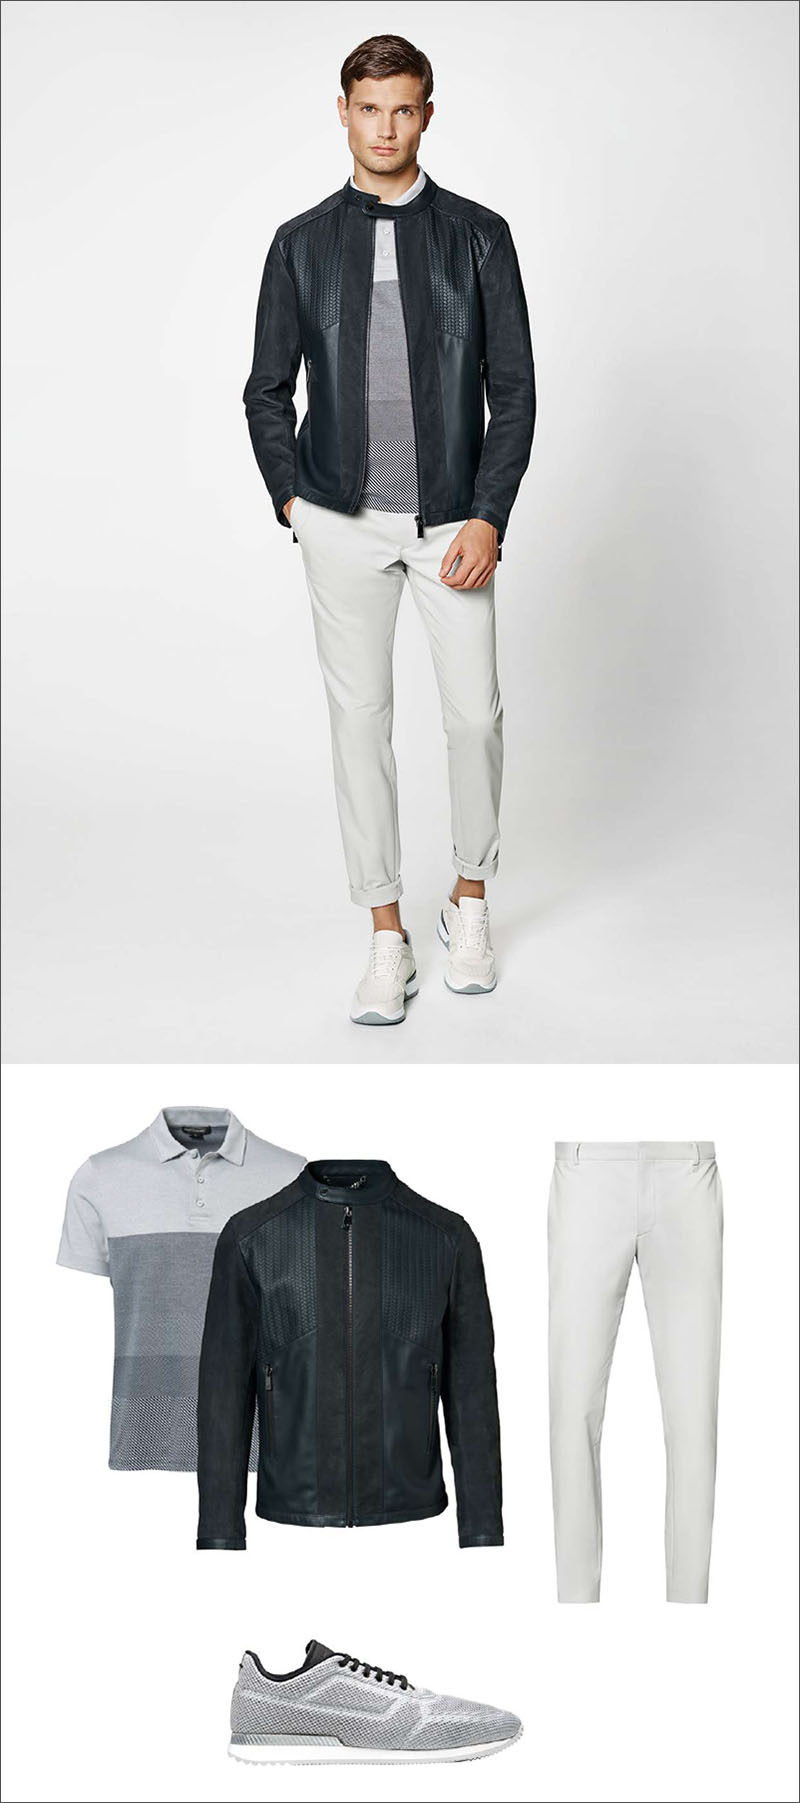 Men's Fashion Ideas - 17 Men's Outfits From Porsche Design's 2017 Spring/Summer Collection | This men's outfit was created by pairing a striped polo shirt with a dark leather jacket featuring TecFlex embossing, and a simple pair of grey mesh sneakers.